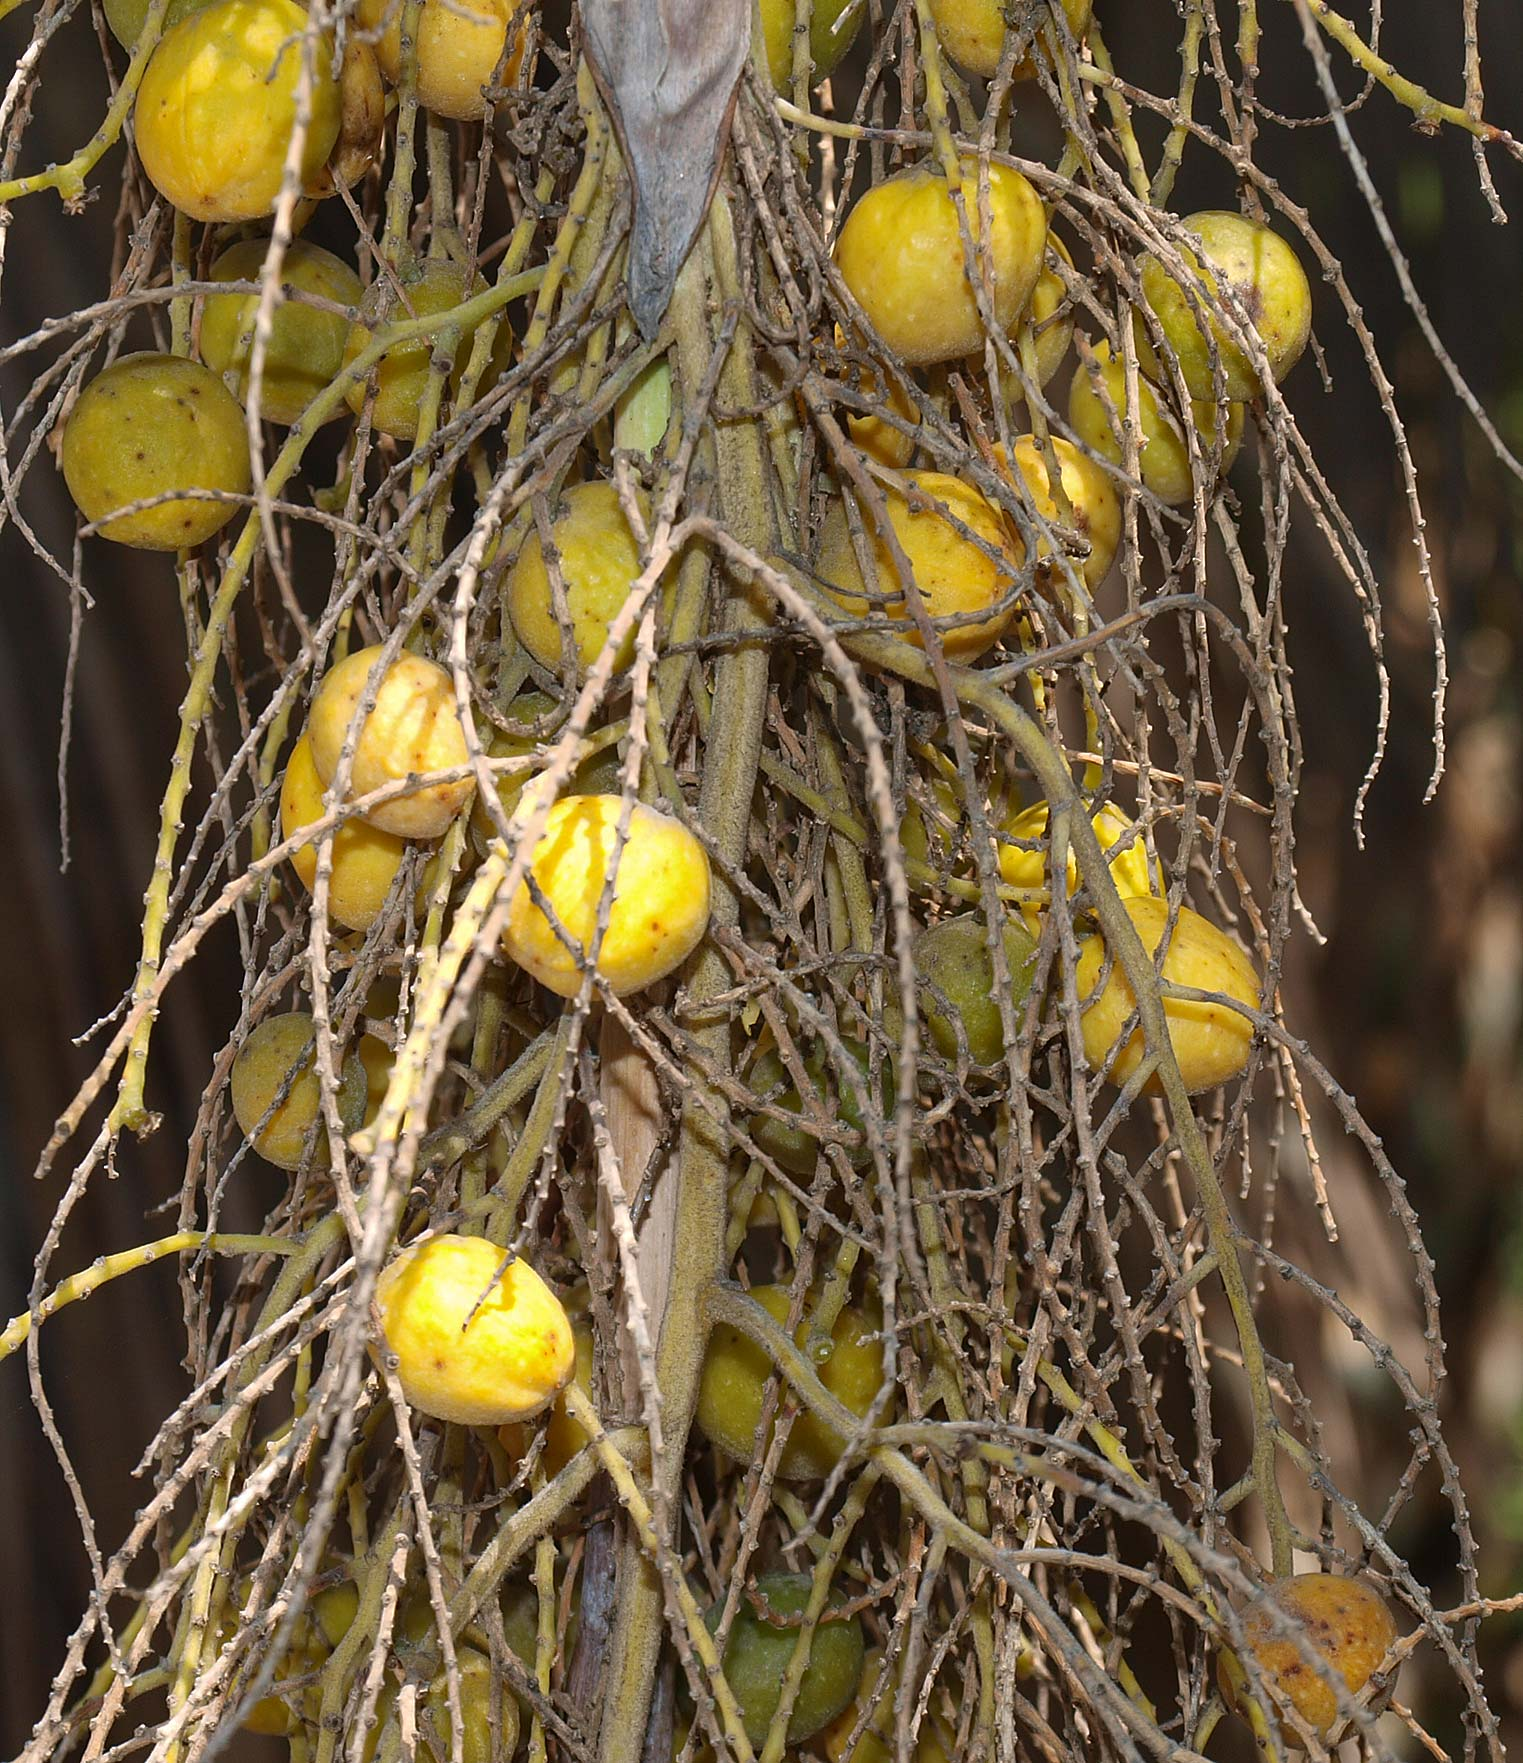 <p><em>Brahea armata</em> immature yellow fruit</p>